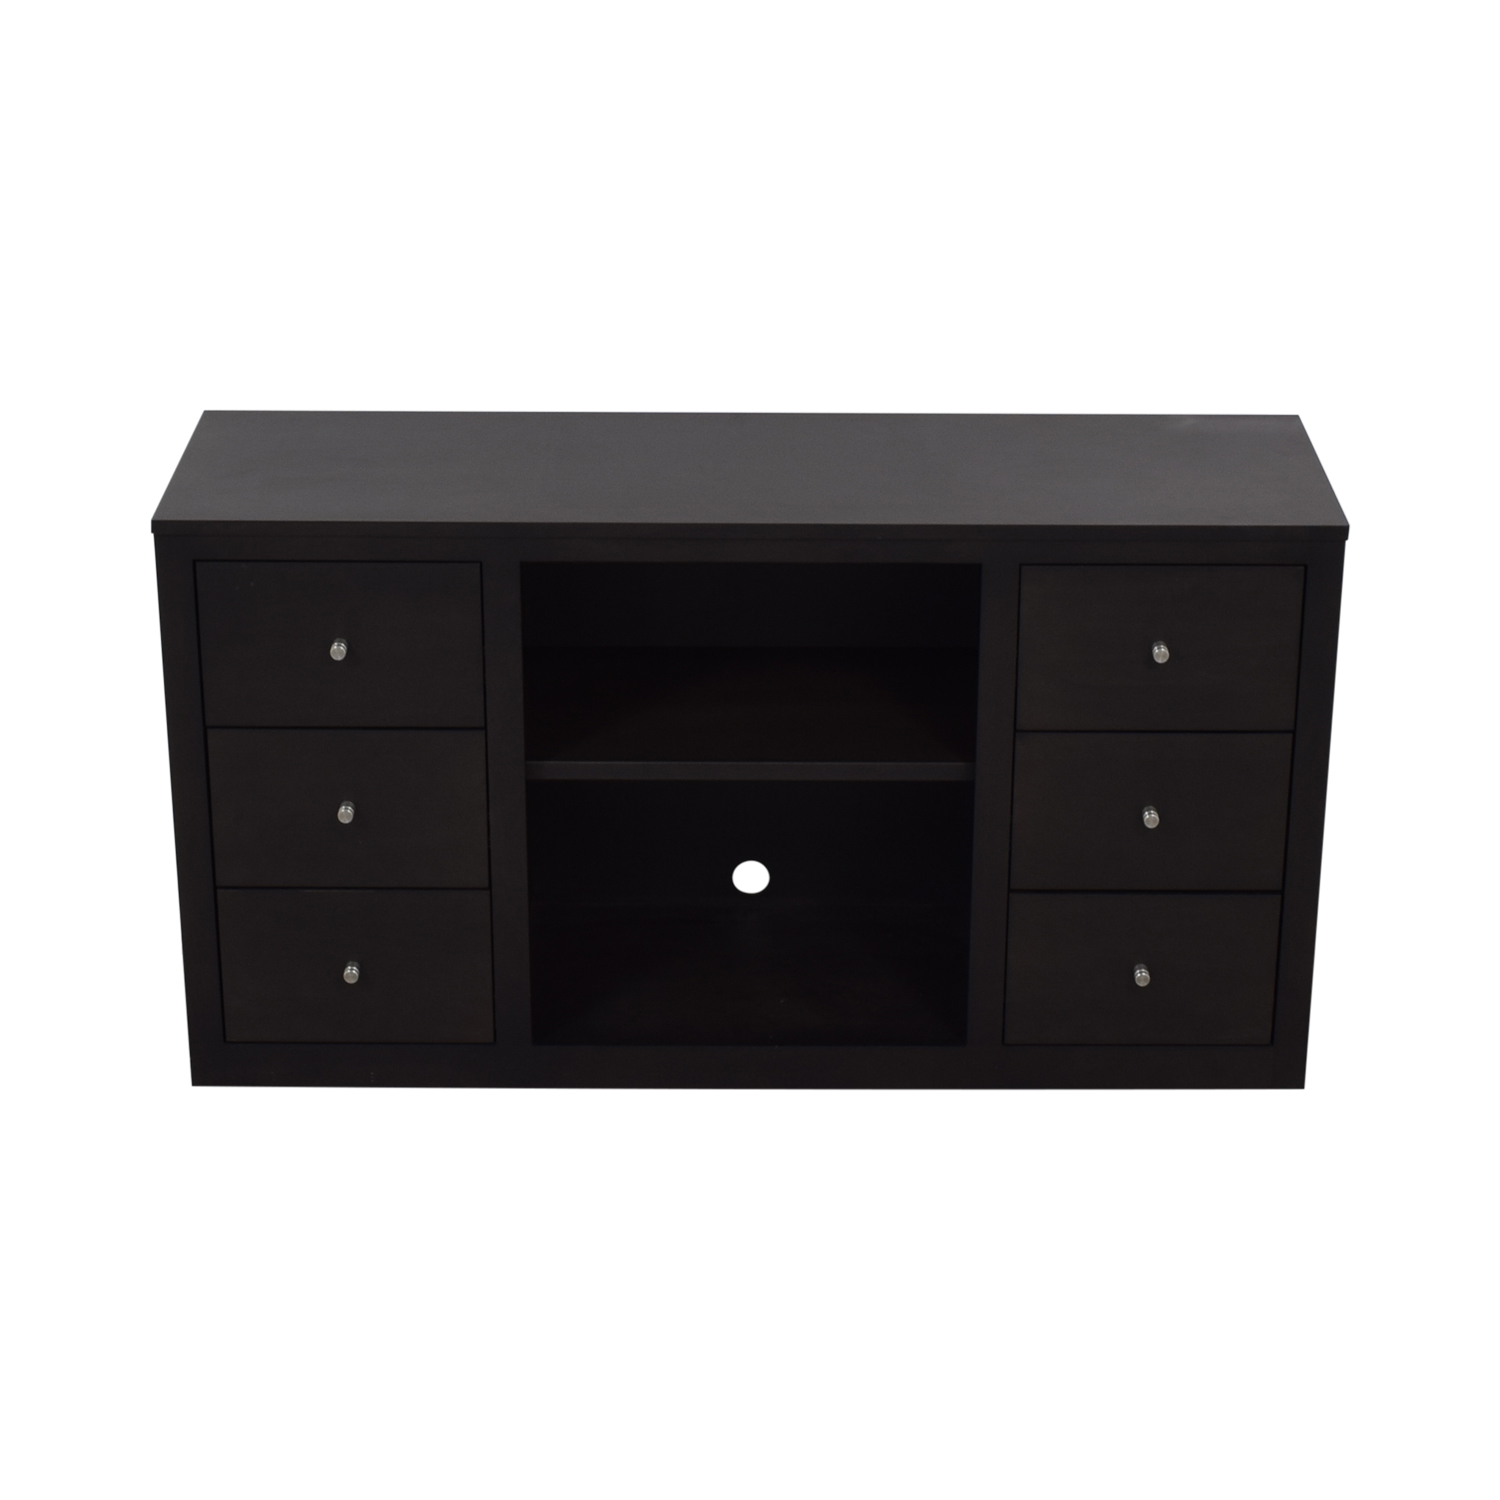 Room & Board Woodwind Maple With Charcoal Stain Media Cabinet sale